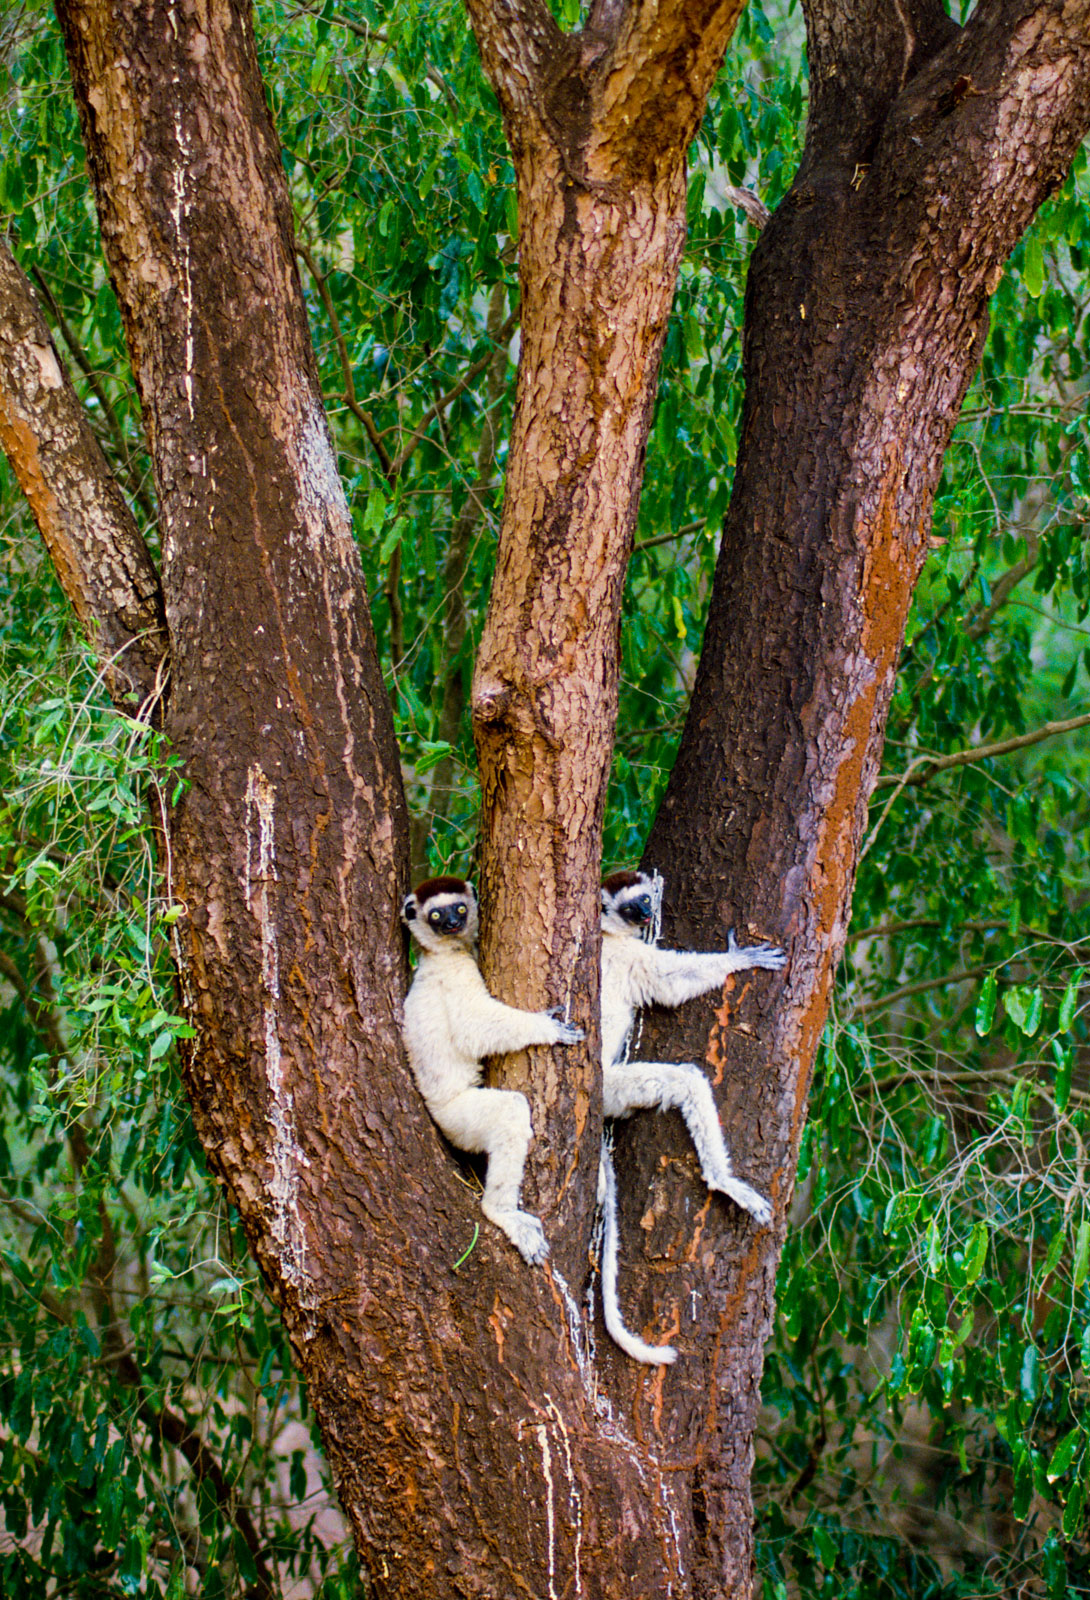 Verreaux's sifakas in trees, Berenty Reserve, Madagascar